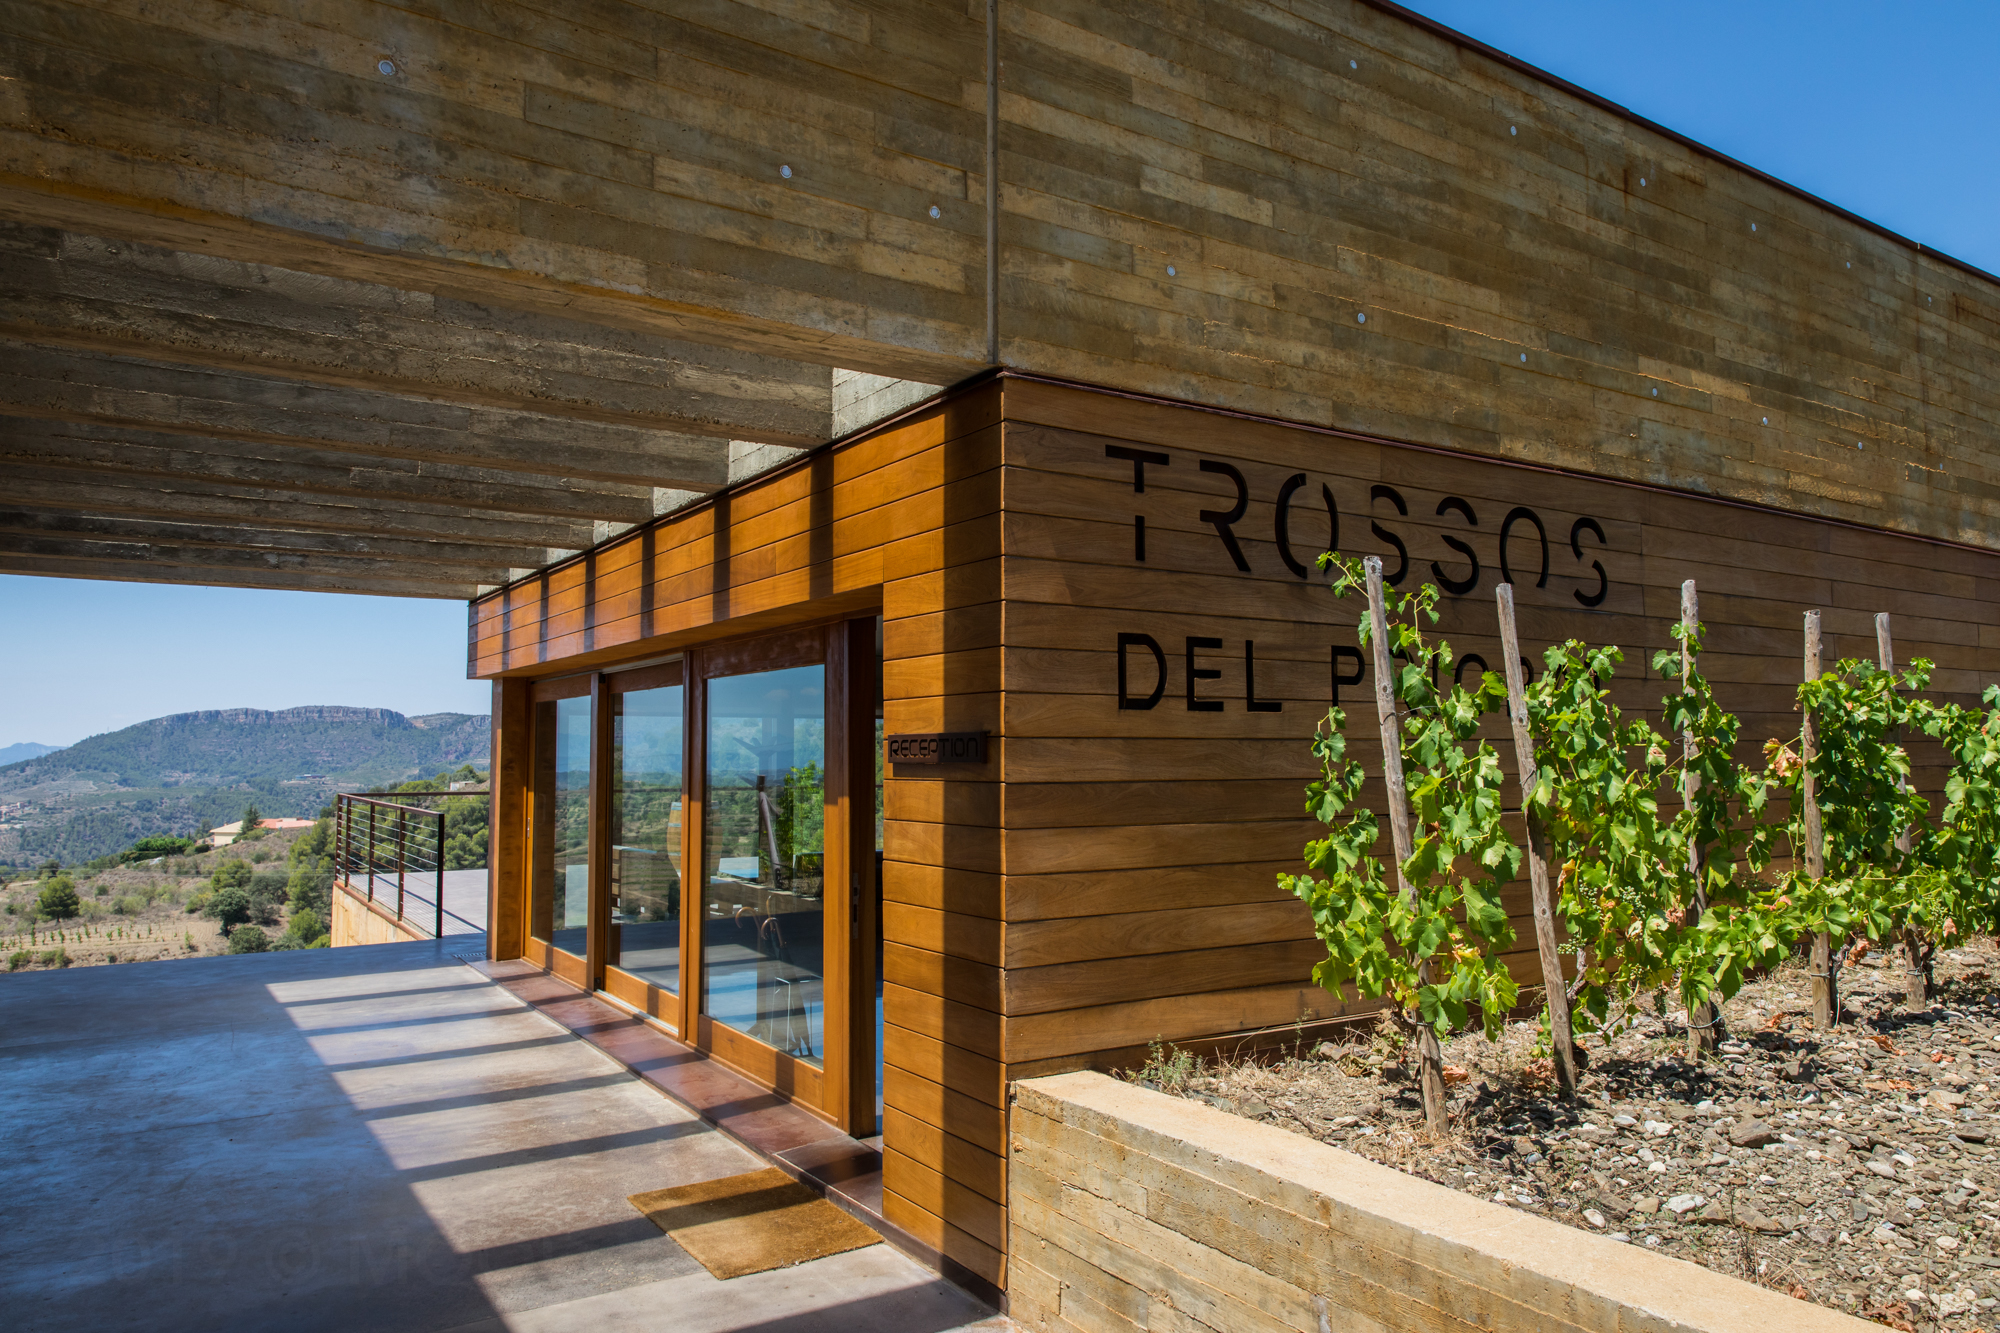 Our winery hotel